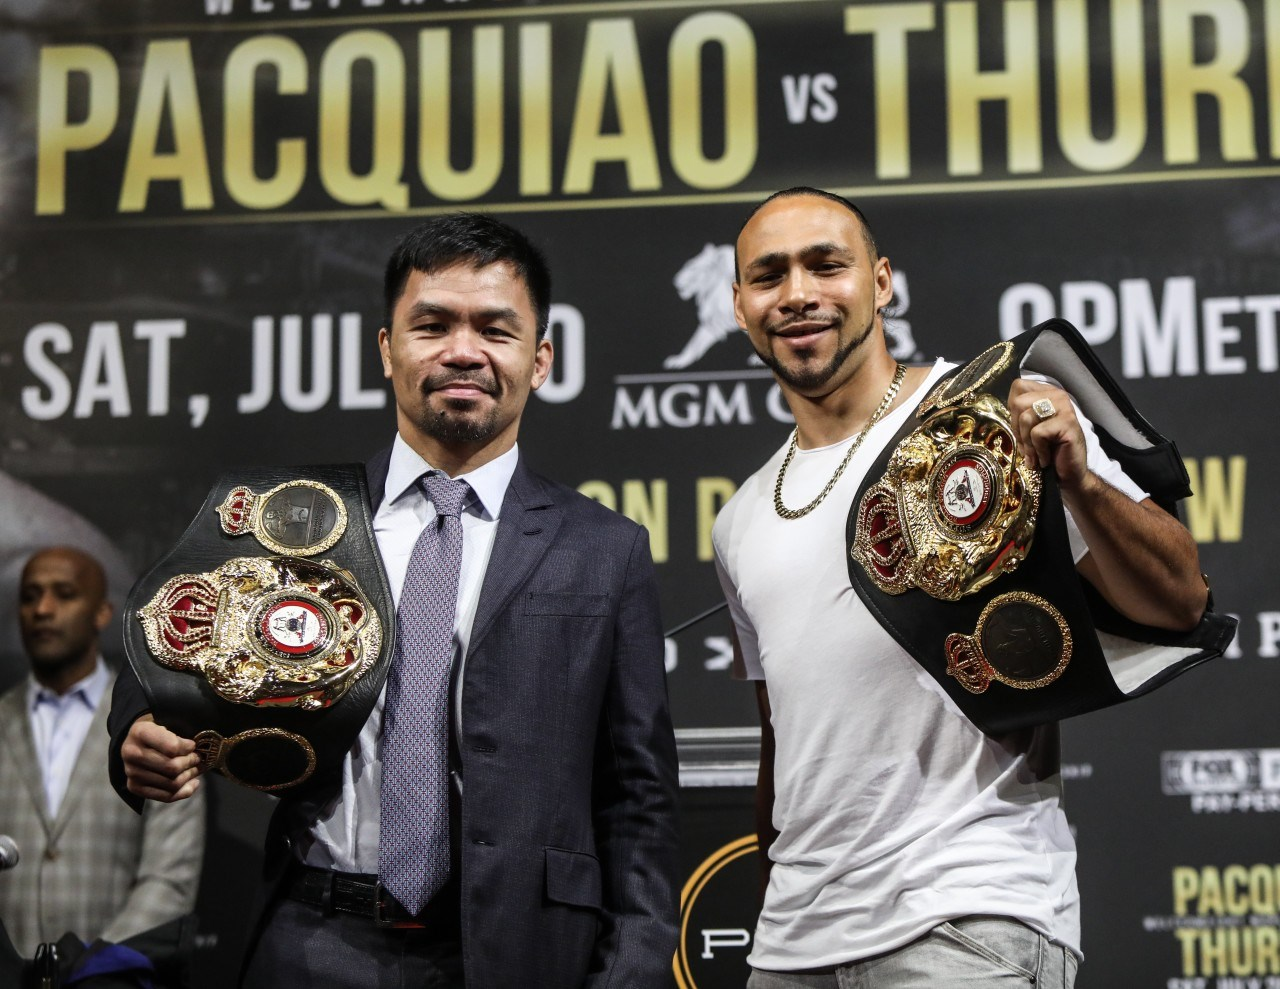 (FROM LEFT): Pacquiao, Thurman  Photo by Fathom Events